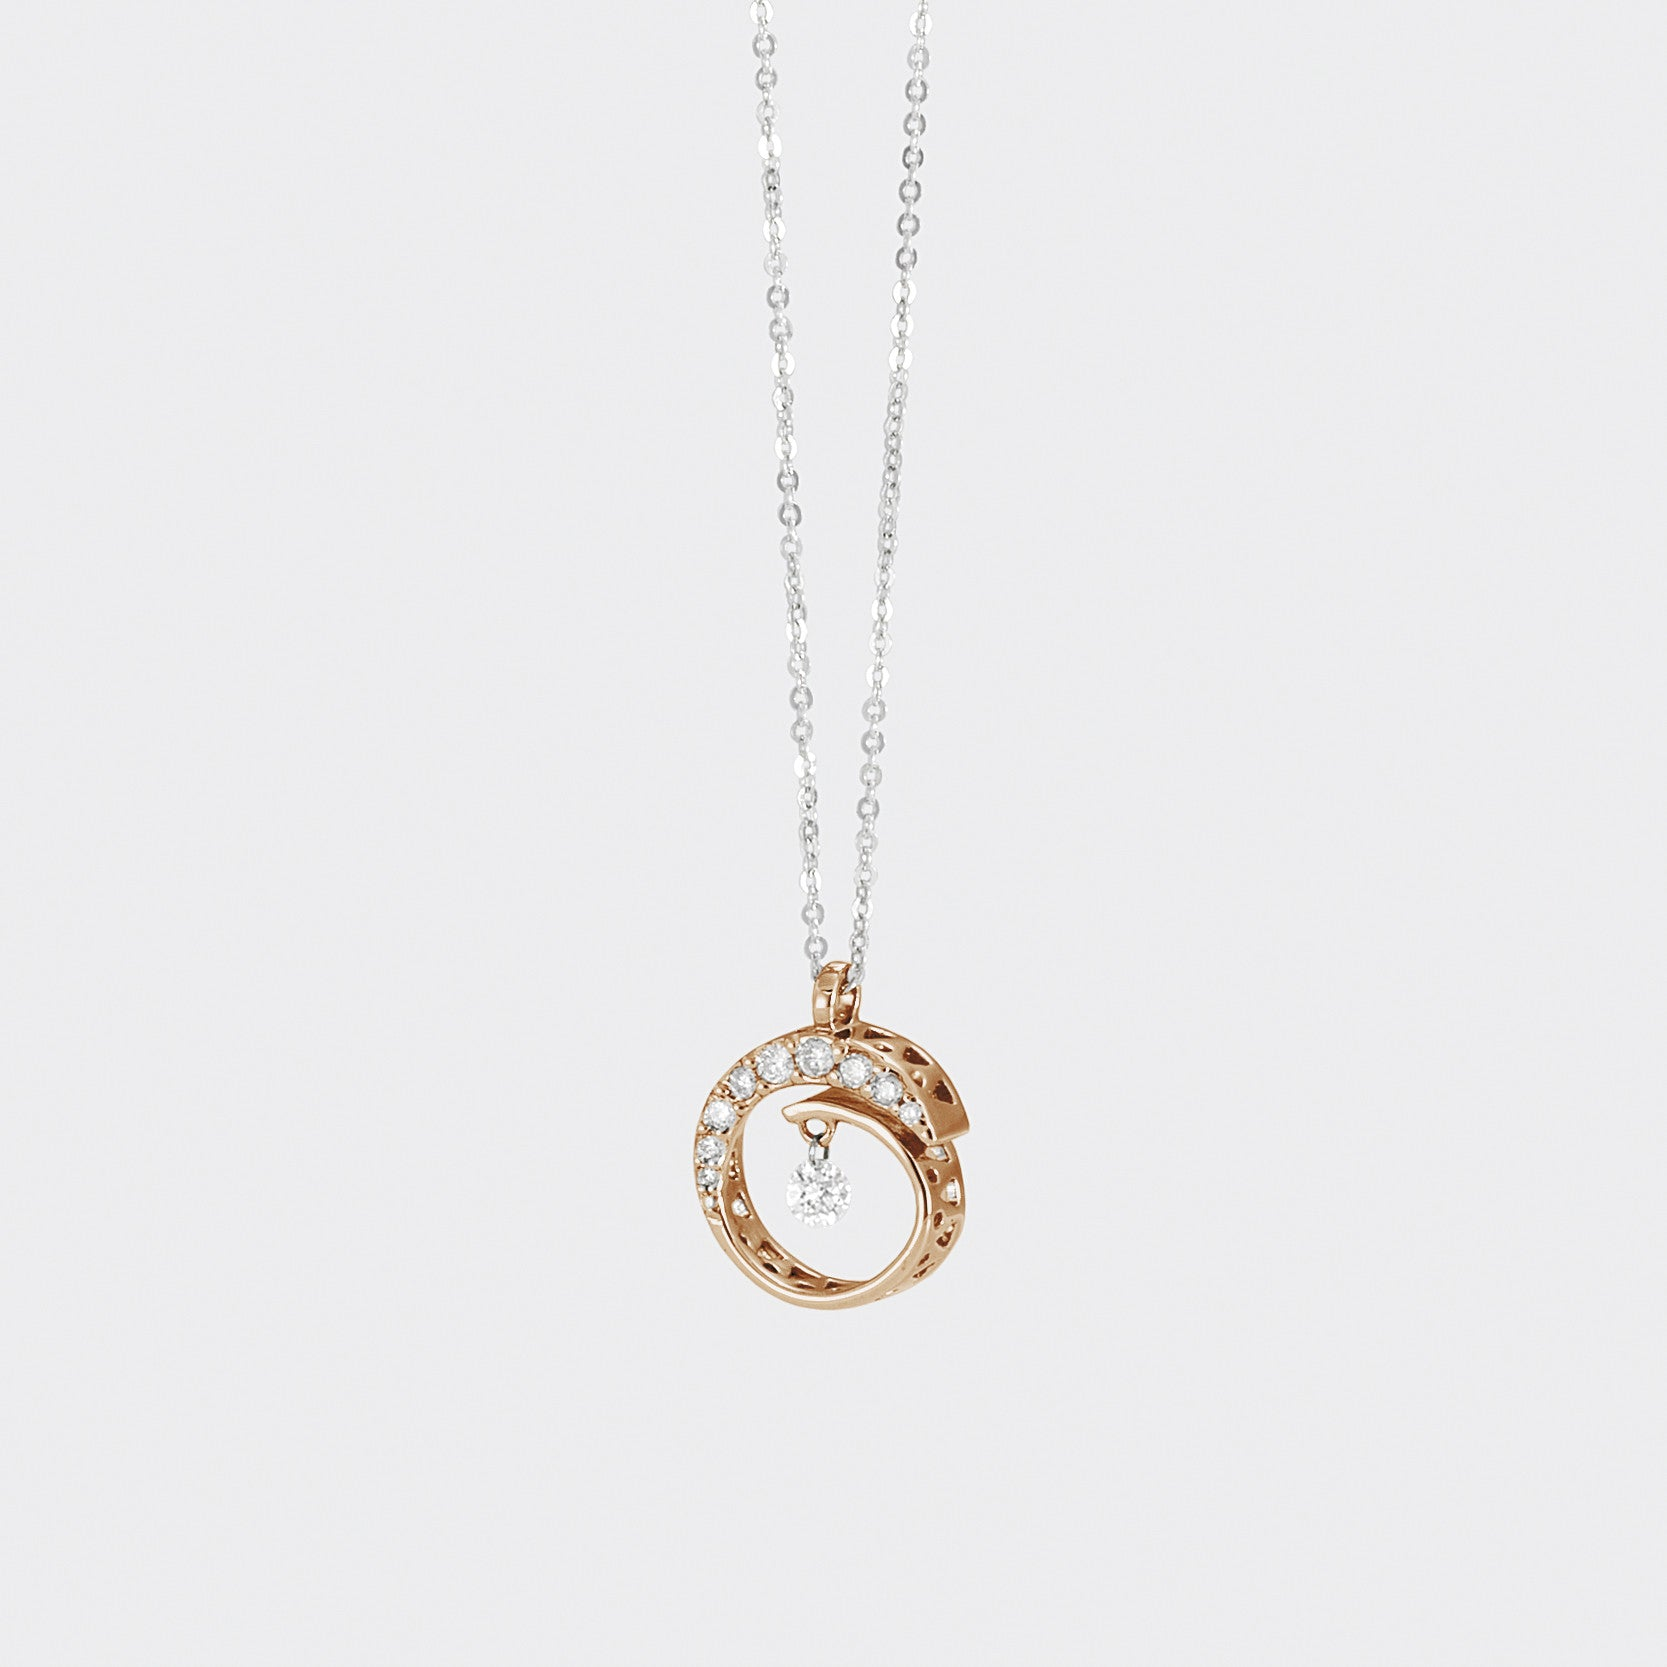 Ponte Vecchio Necklace Open Design Diamond 18ct Rose Gold